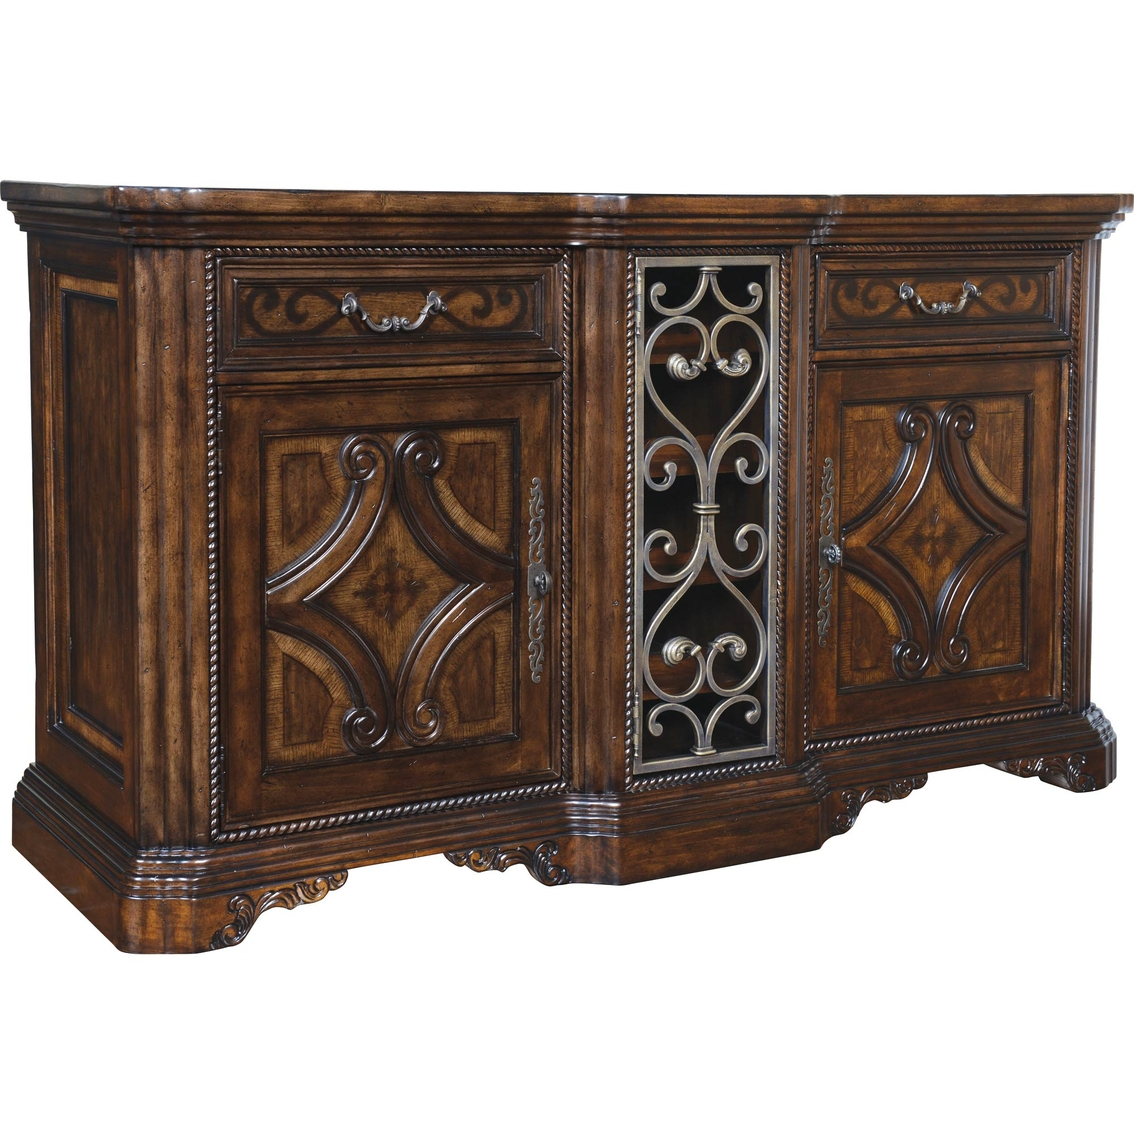 Art furniture valencia buffet dining storage home for Hometown furniture exchange